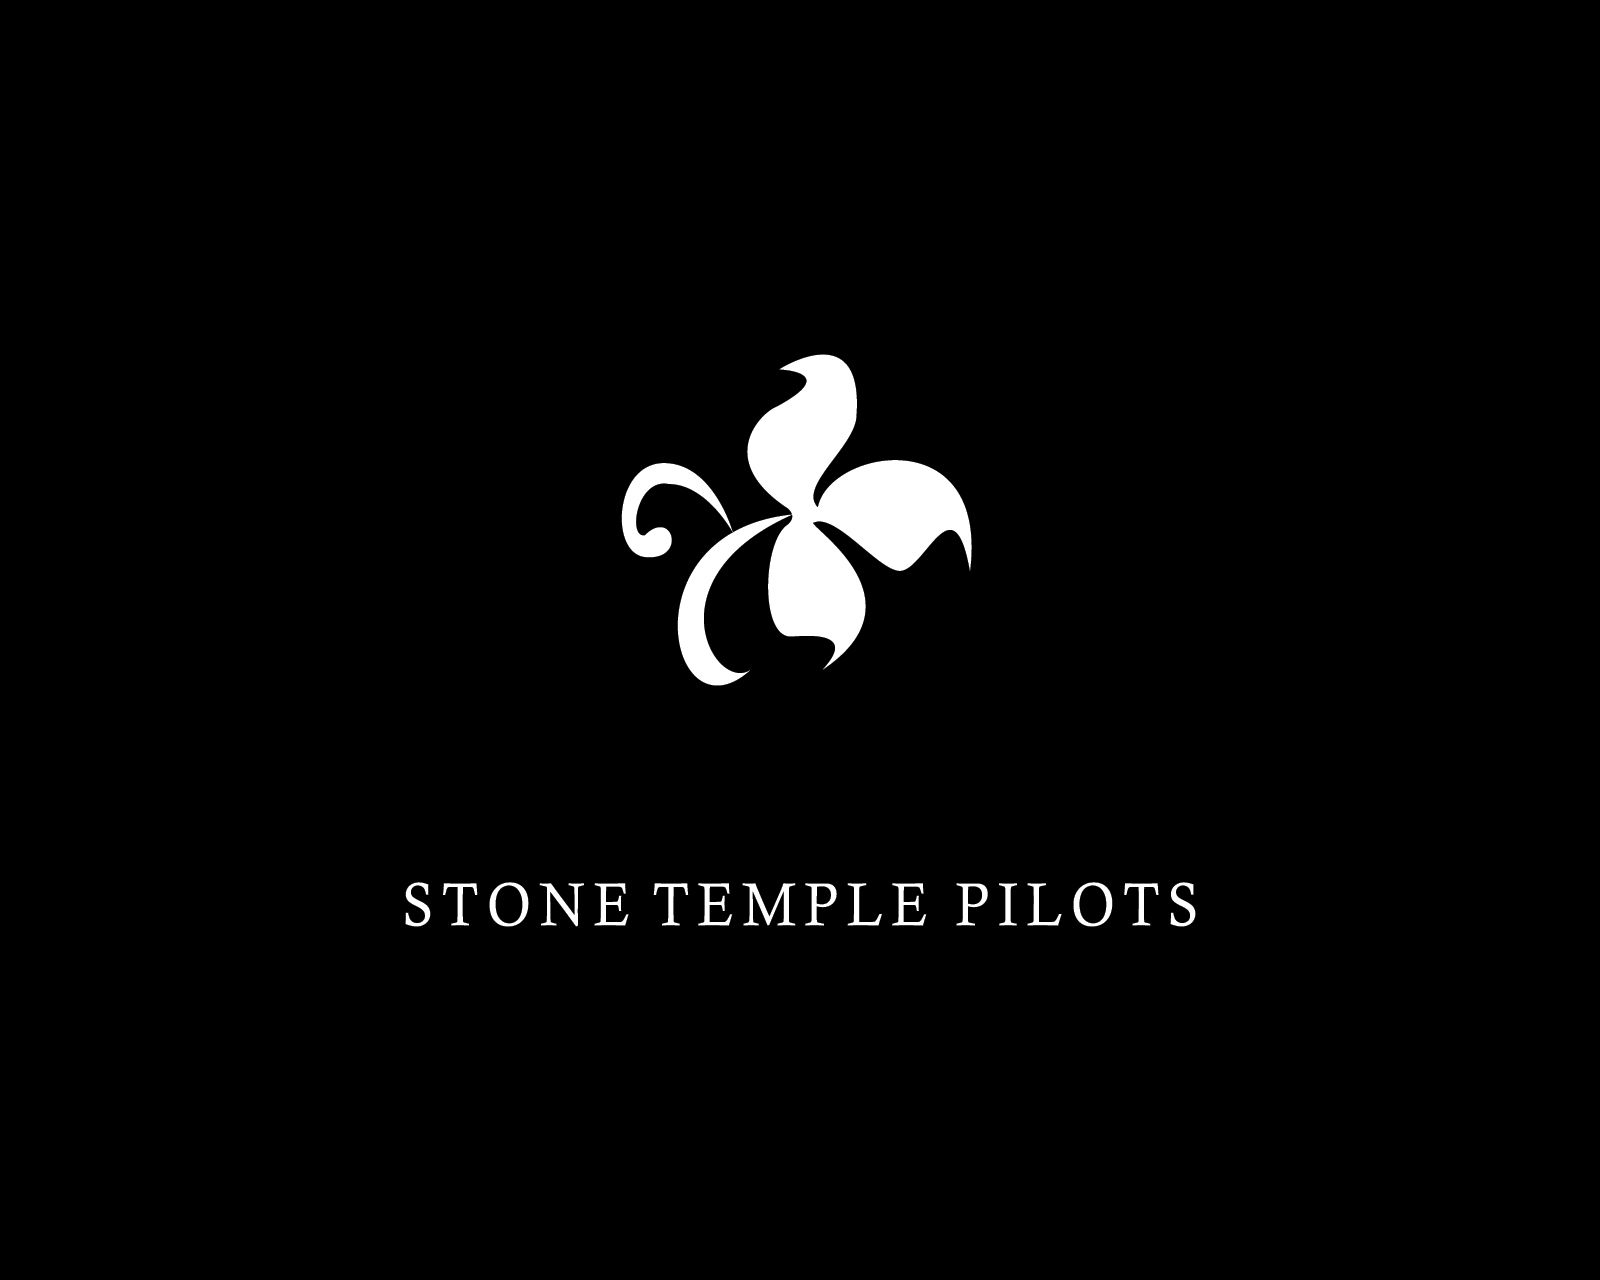 stone temple pilots wallpapers - wallpaper cave